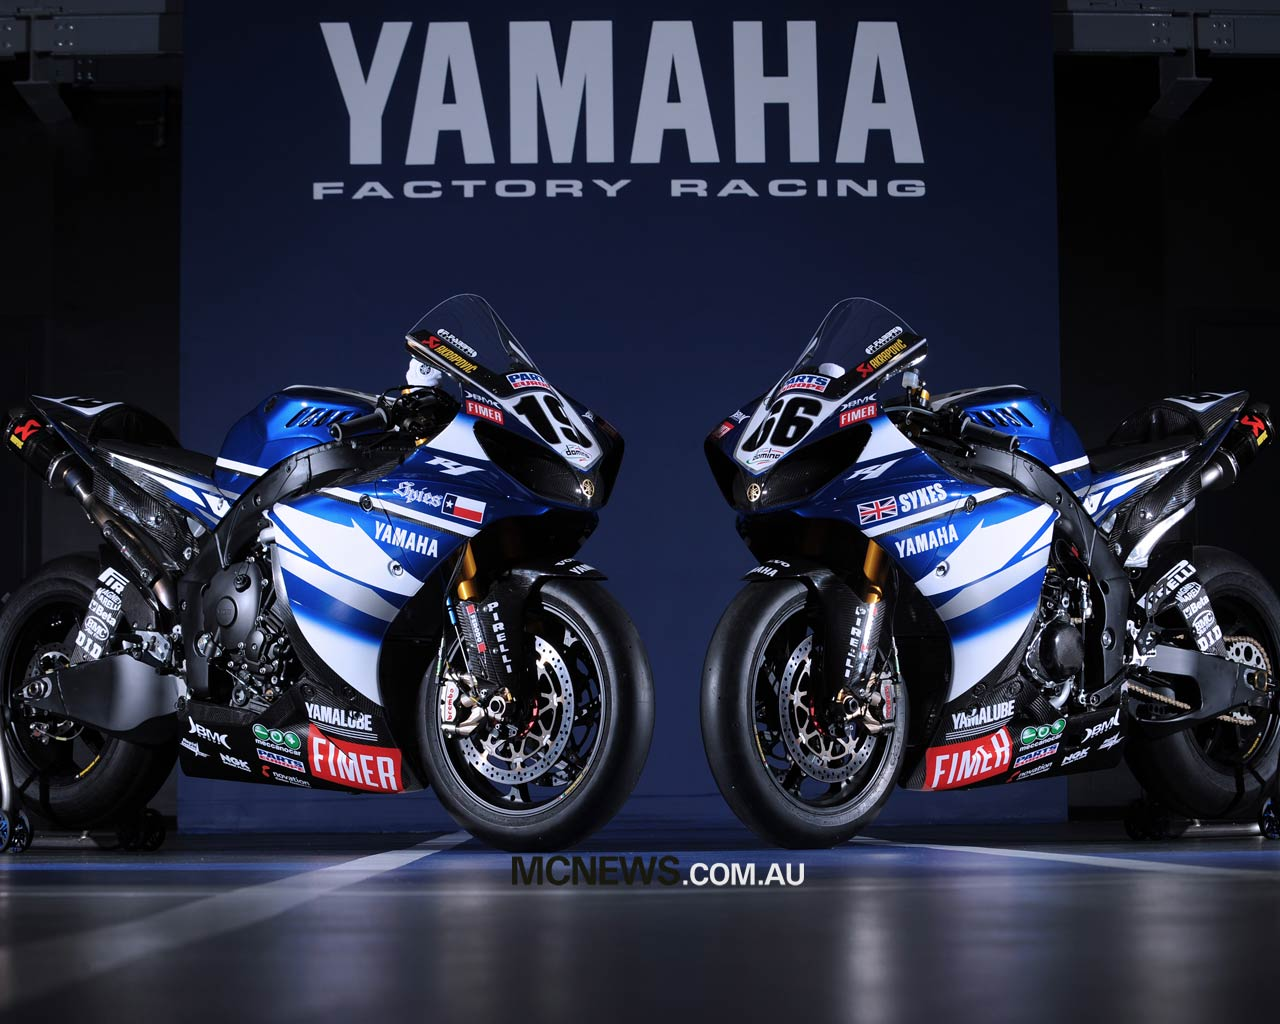 Yamaha r1 superbike wallpapers